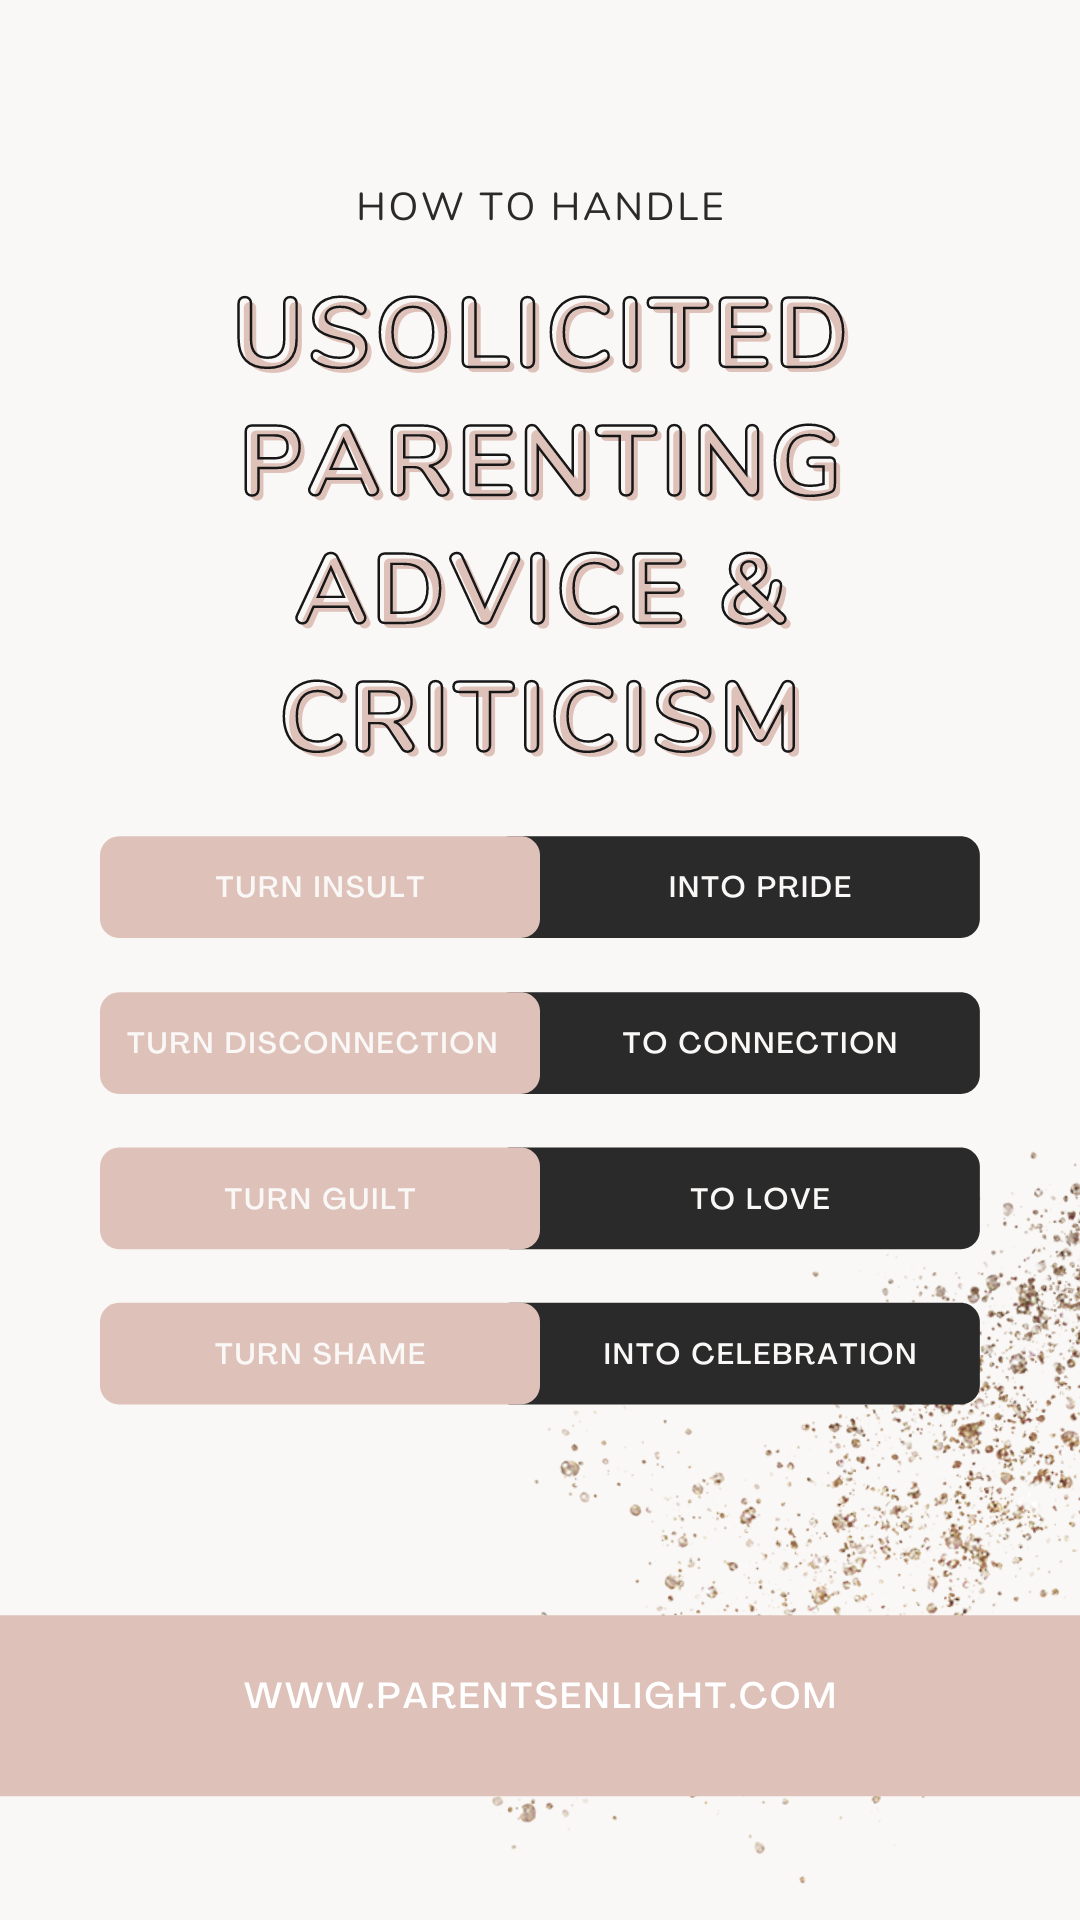 Parenting comes with judgment and criticism; if you're a mom - you already know this. No matter what you will do, someone will tell you that you're not doing it right and that they know how to do it better. Usually this is a source for disconnection, fights, insults, and pain... But here's the thing - we got it all wrong. Want to know how to turn all these into great opportunities for connection? Read on #parentingadvice #usolicitedparentingadvice #handlejudgment #mindfulness #mindfulparenting #parentingtips #parentinghelp